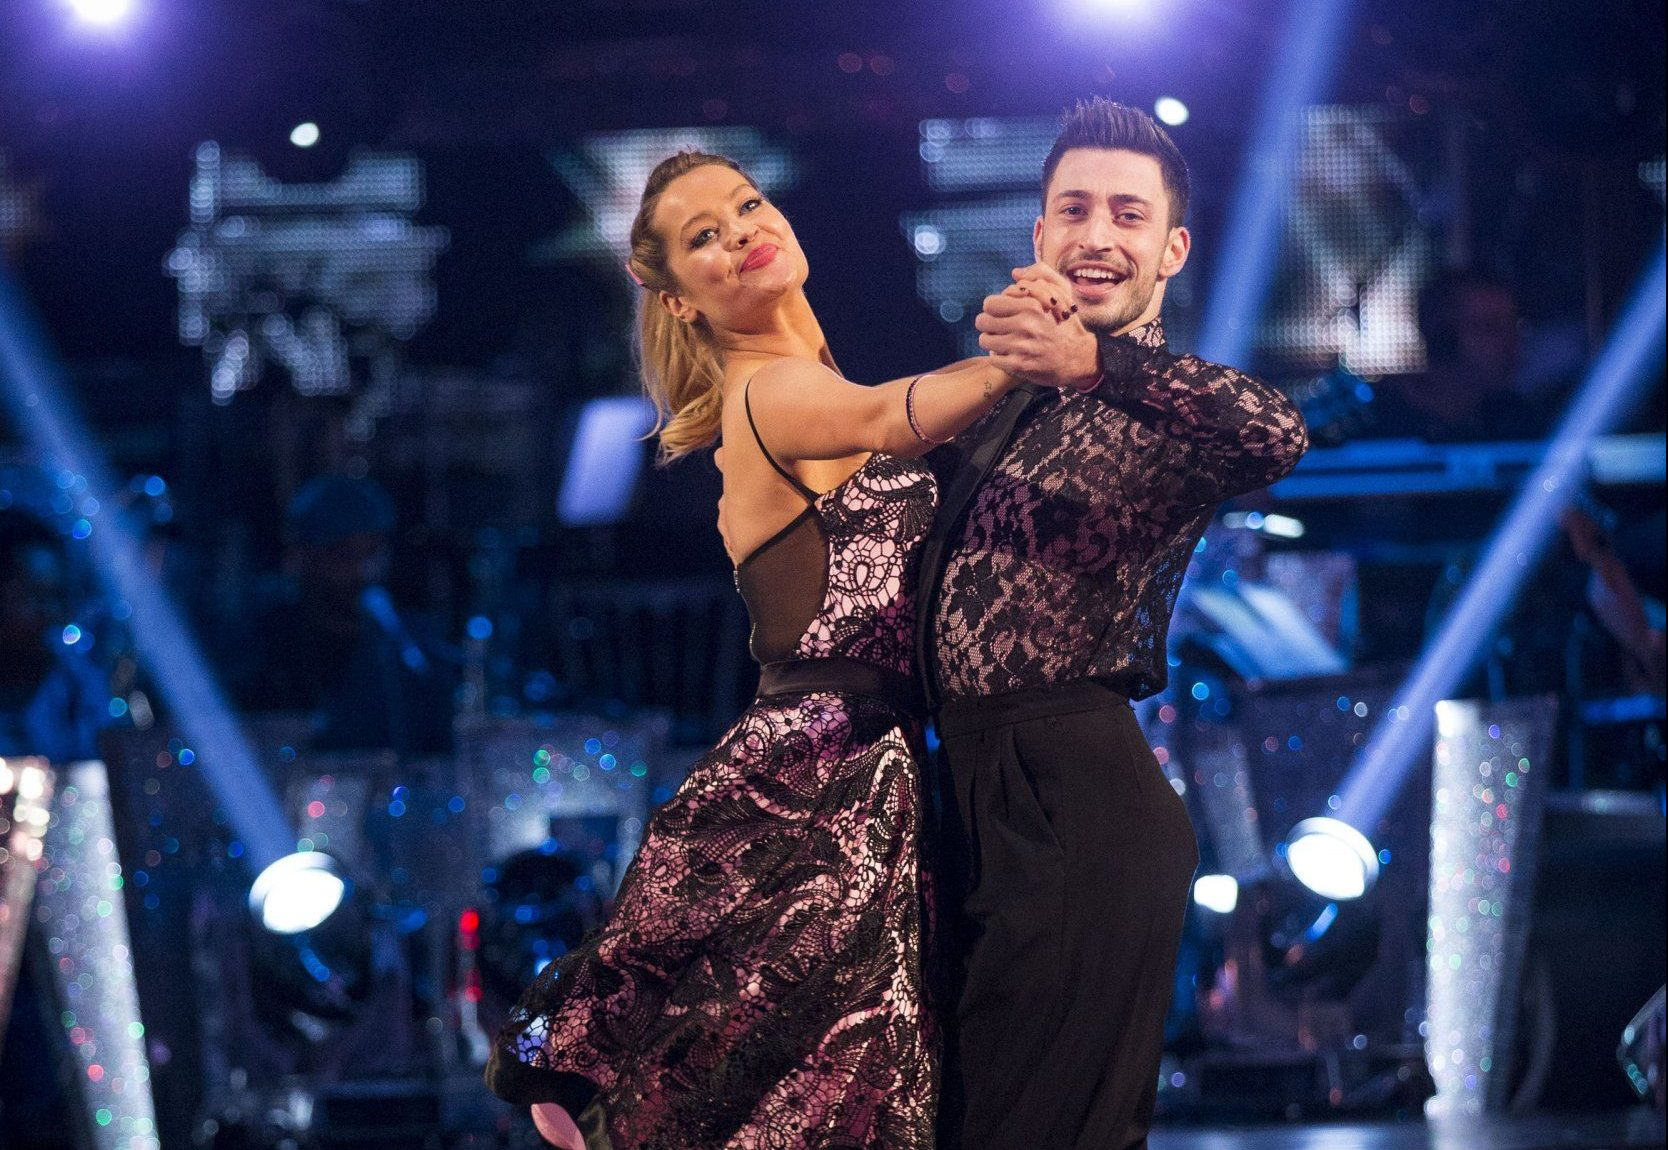 Laura Whitmore 'cried every day' on Strictly Come Dancing over 'uncomfortable' Giovanni Pernice pairing